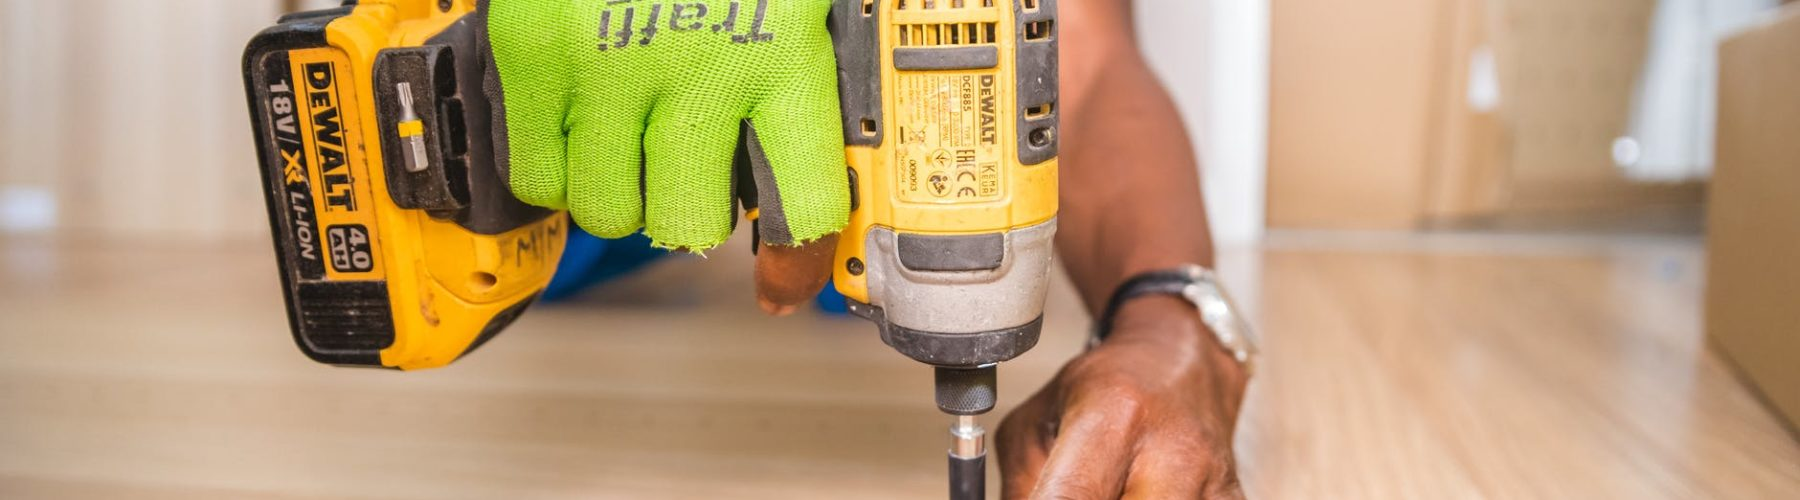 Questions to Ask When Looking for a Handyman San Diego